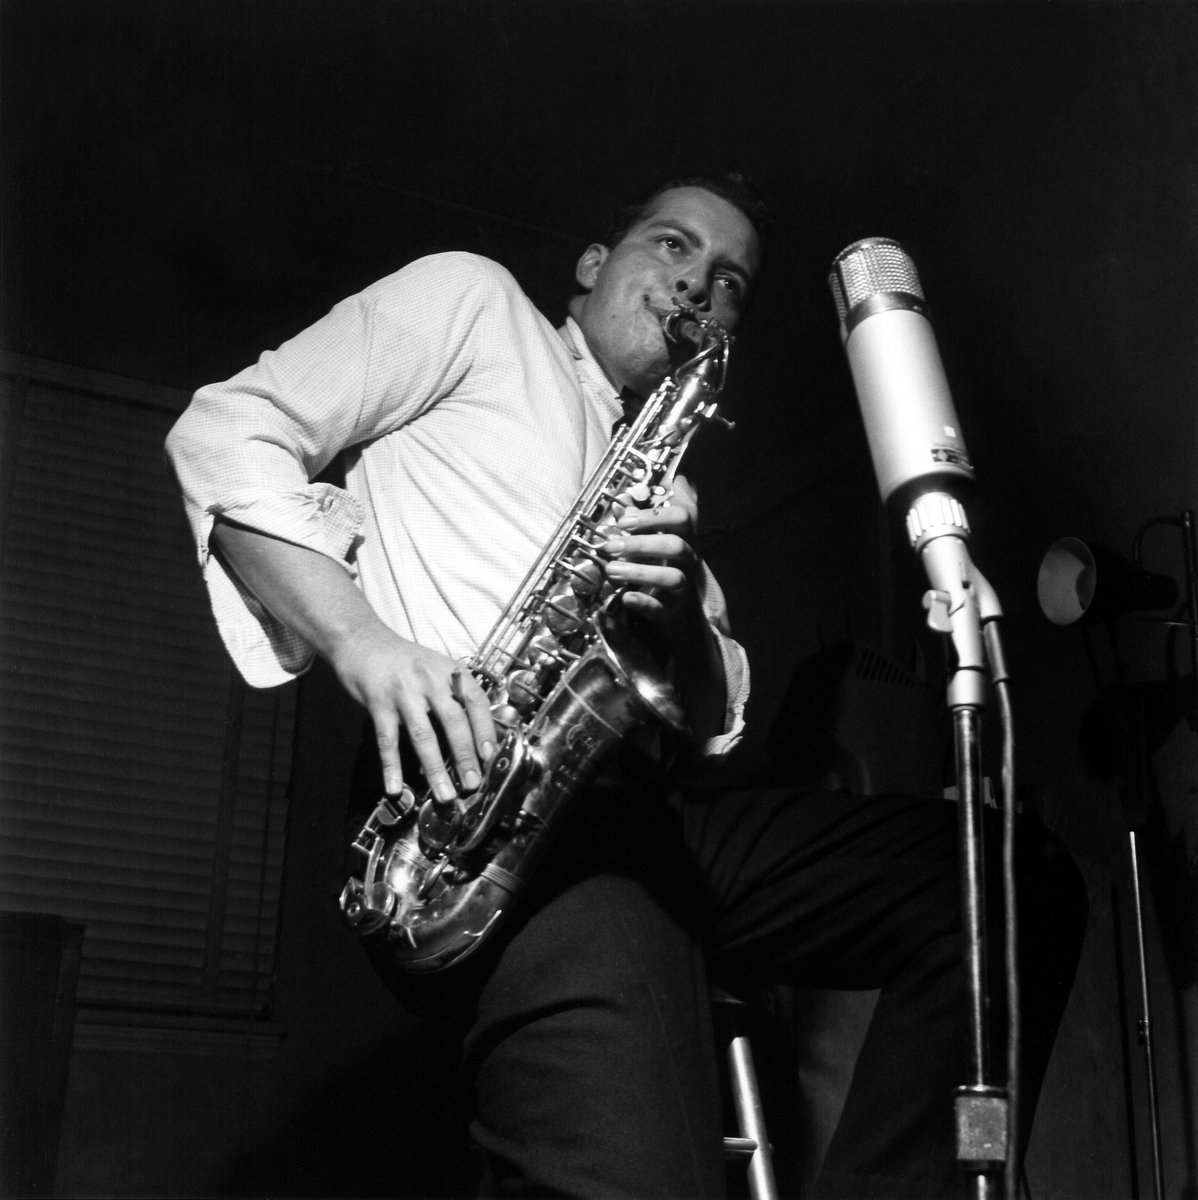 60 years ago #OTD alto saxophonist #JackieMcLean was in Rudy Van Gelder's Hackensack studio recording tracks that would be released on his album 'Jackie's Bag' w/ Donald Byrd (trumpet), Sonny Clark (piano), Paul Chambers (bass) & Philly Joe Jones (drums) https://t.co/3PrgvJ7GMt